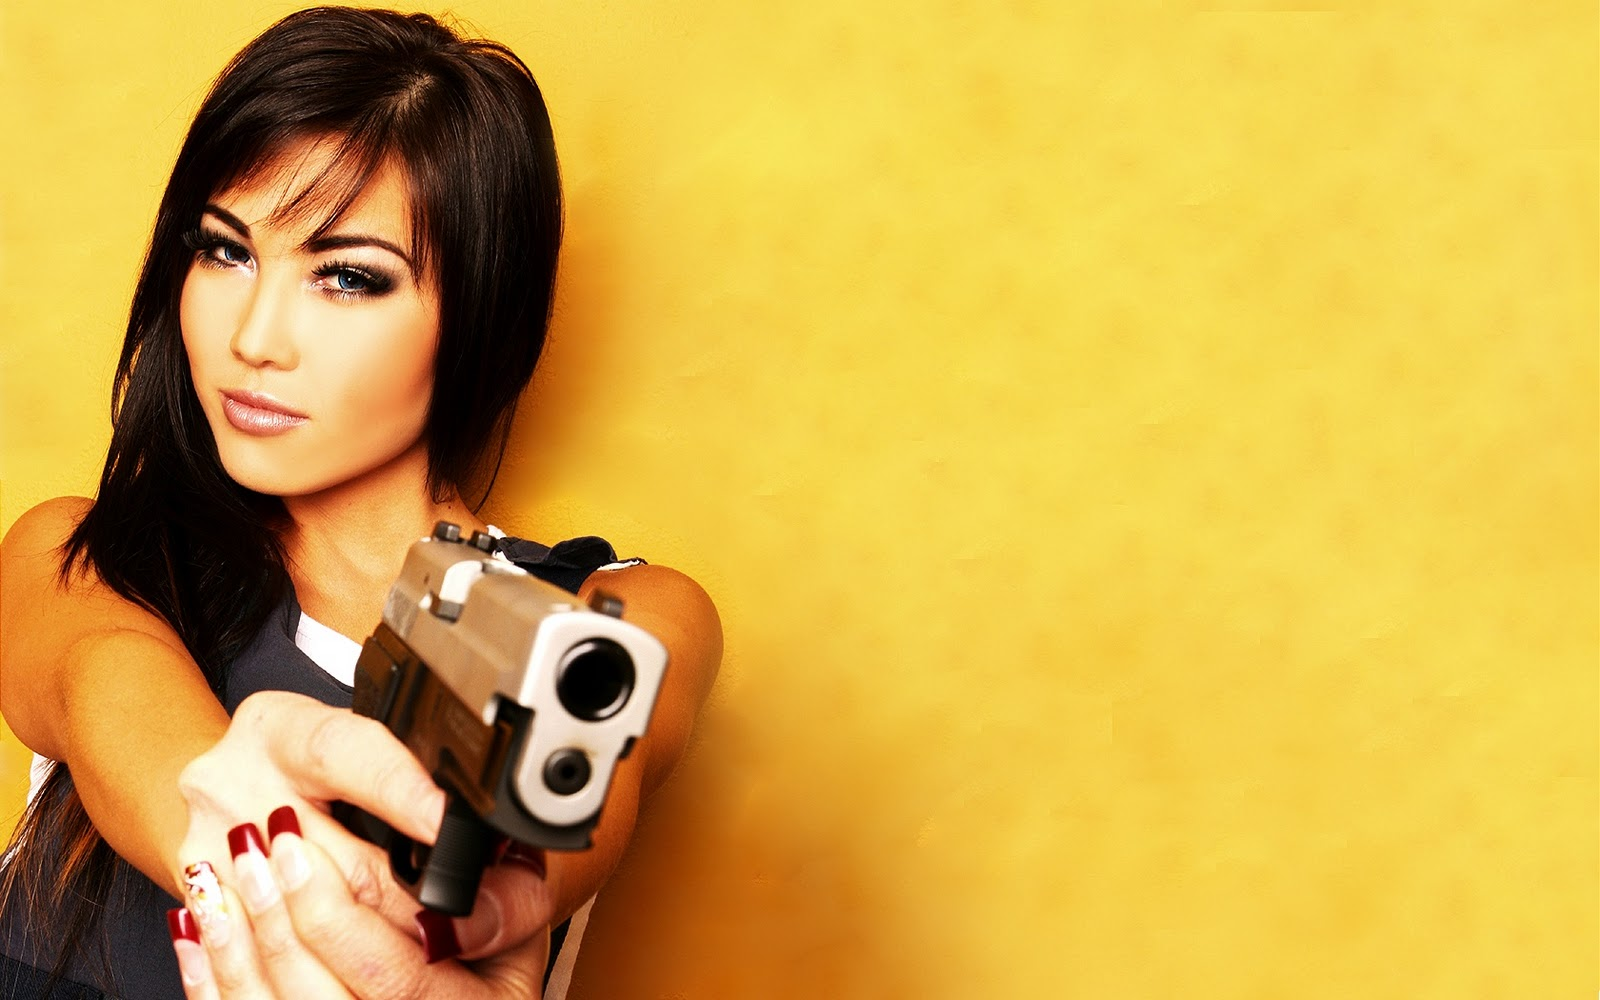 Bad girl Joslyn James begs for some love gun posing with an automatic weapon № 147622 без смс